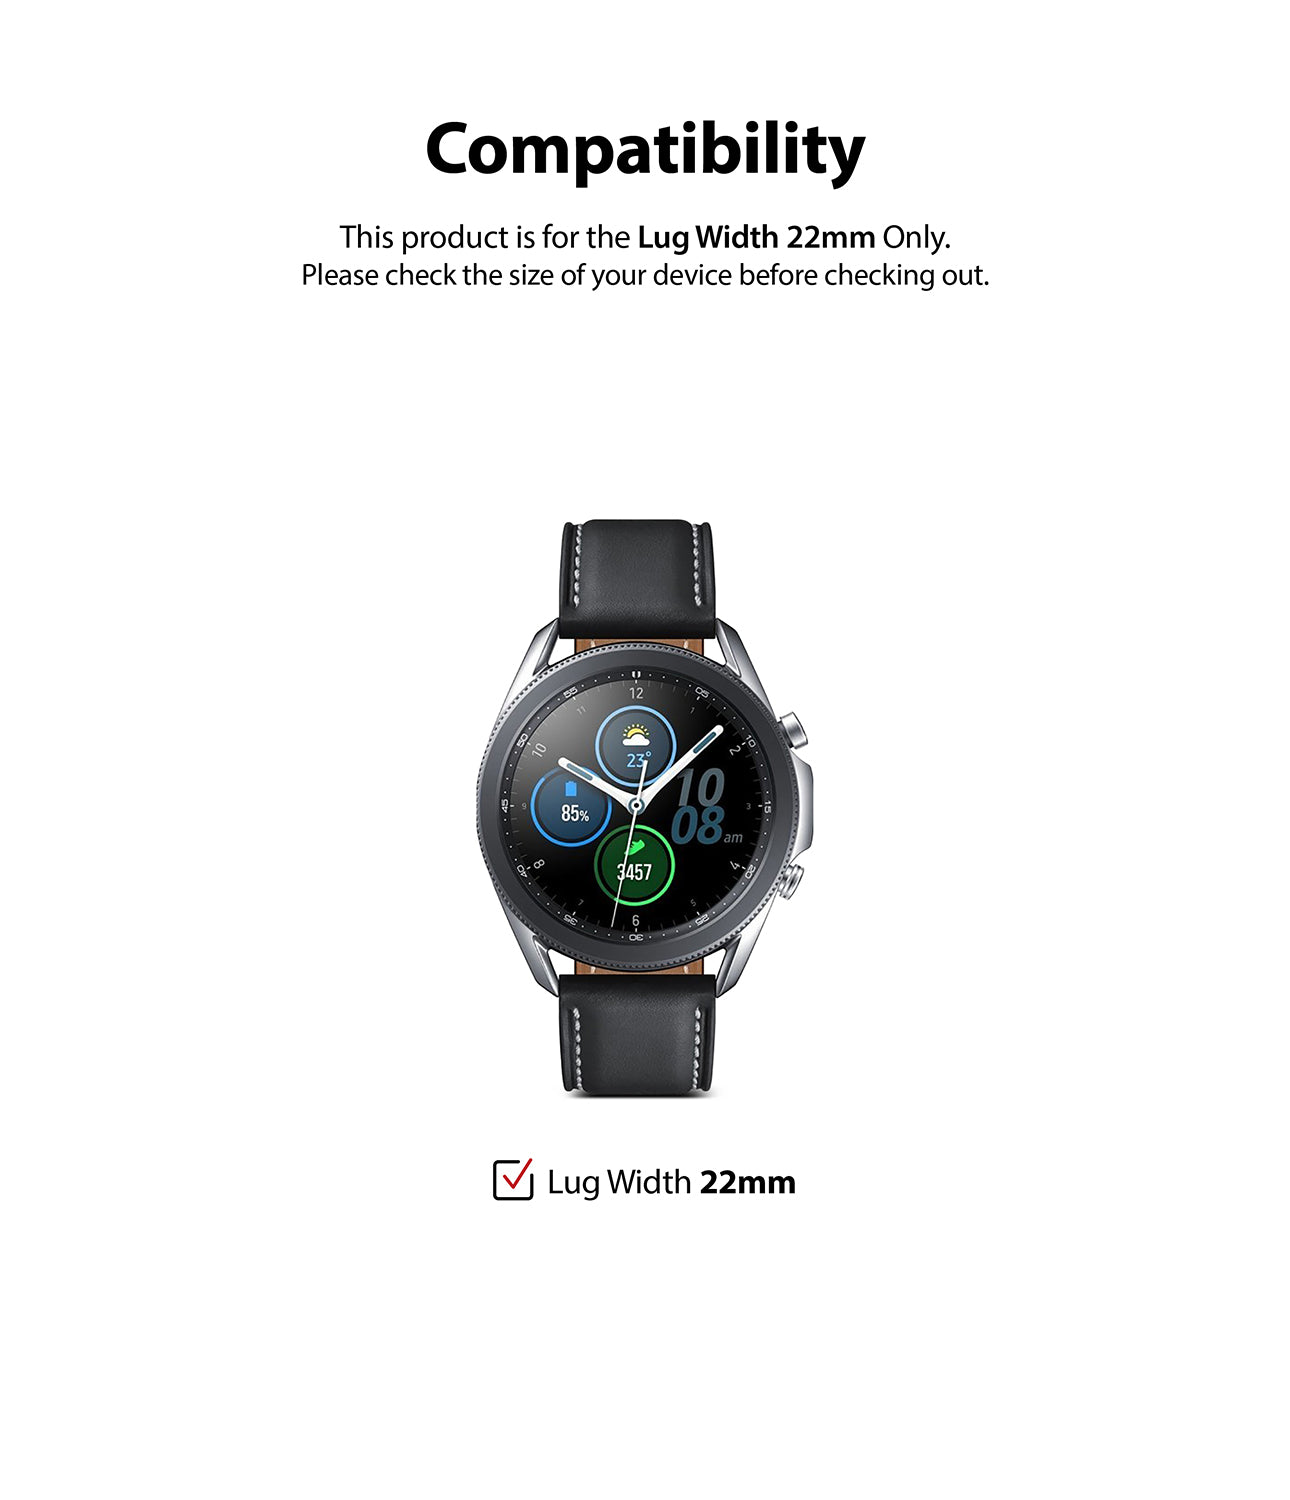 compatible only with smartwatches with lug width 22mm